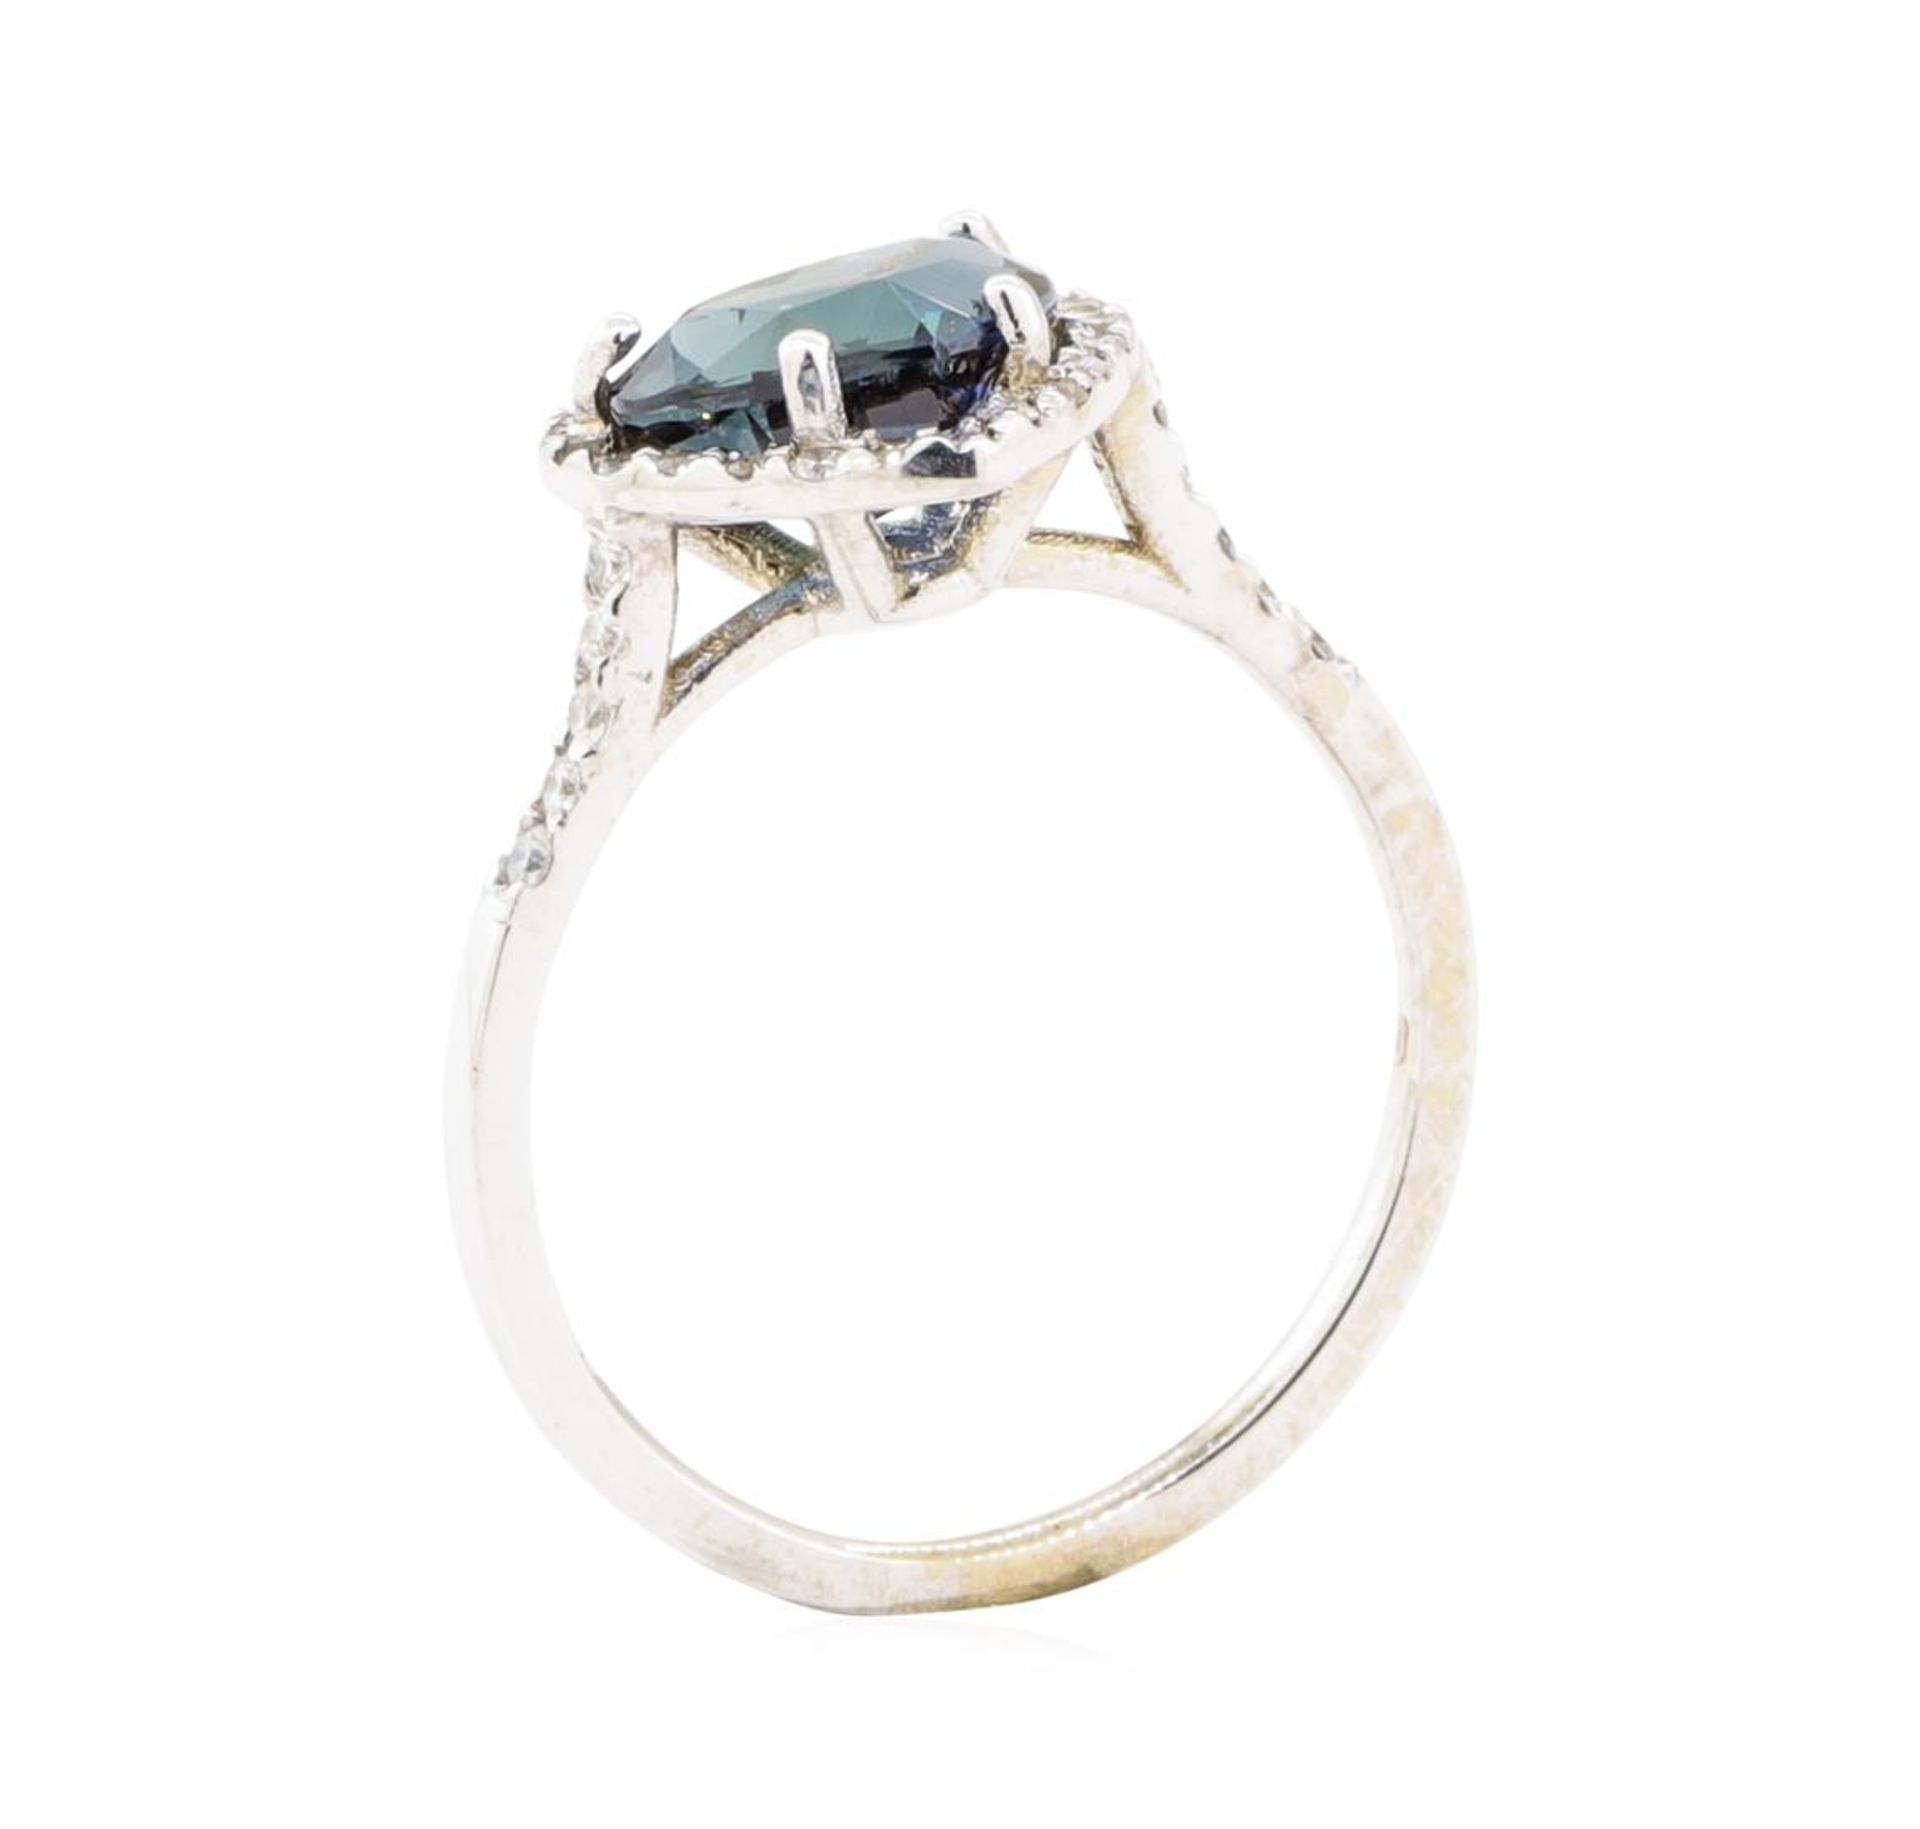 2.66 ctw Sapphire And Diamond Ring - 18KT White Gold - Image 4 of 5